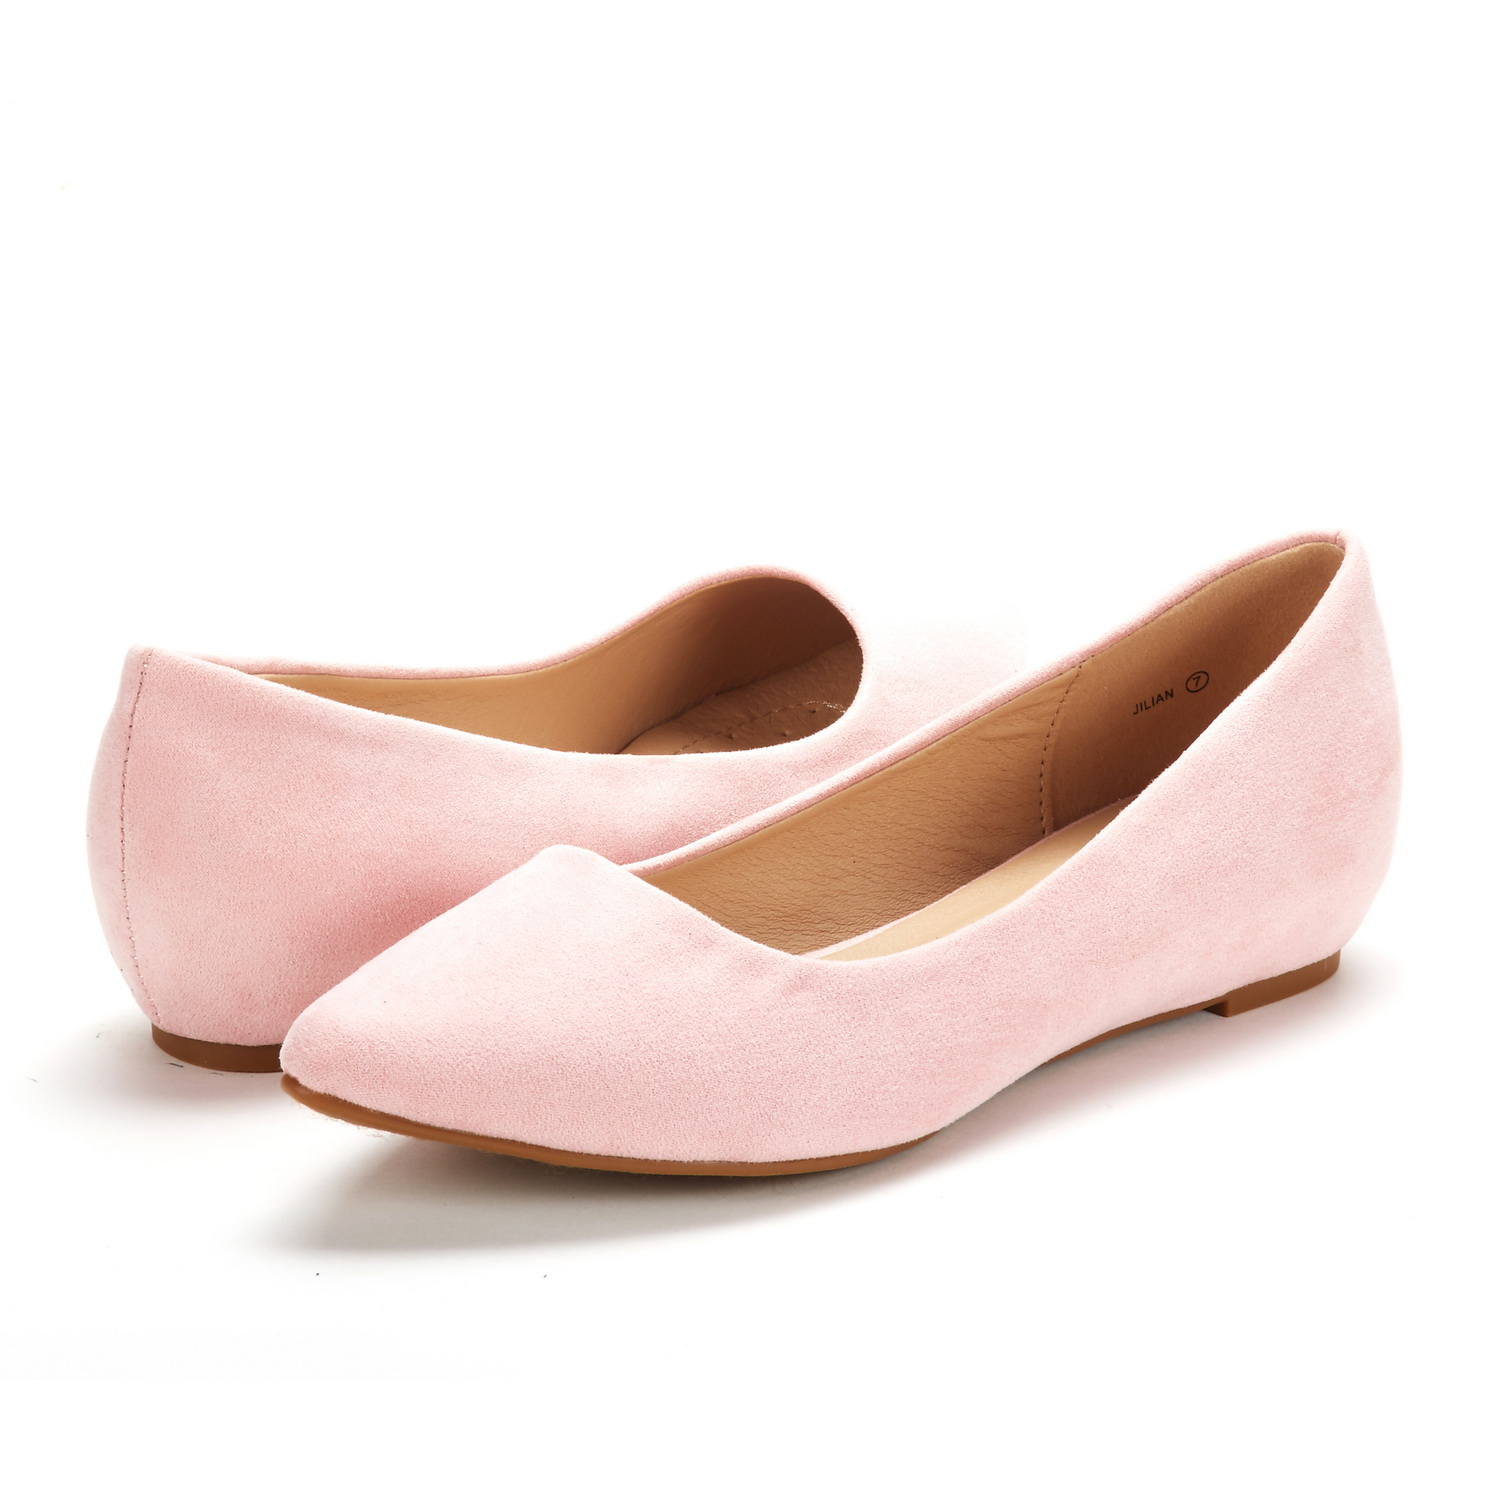 53c1a9858a8 DREAM PAIRS Womens Jilian Pointed-Toe Low Wedge Soft Lining Slip On ...